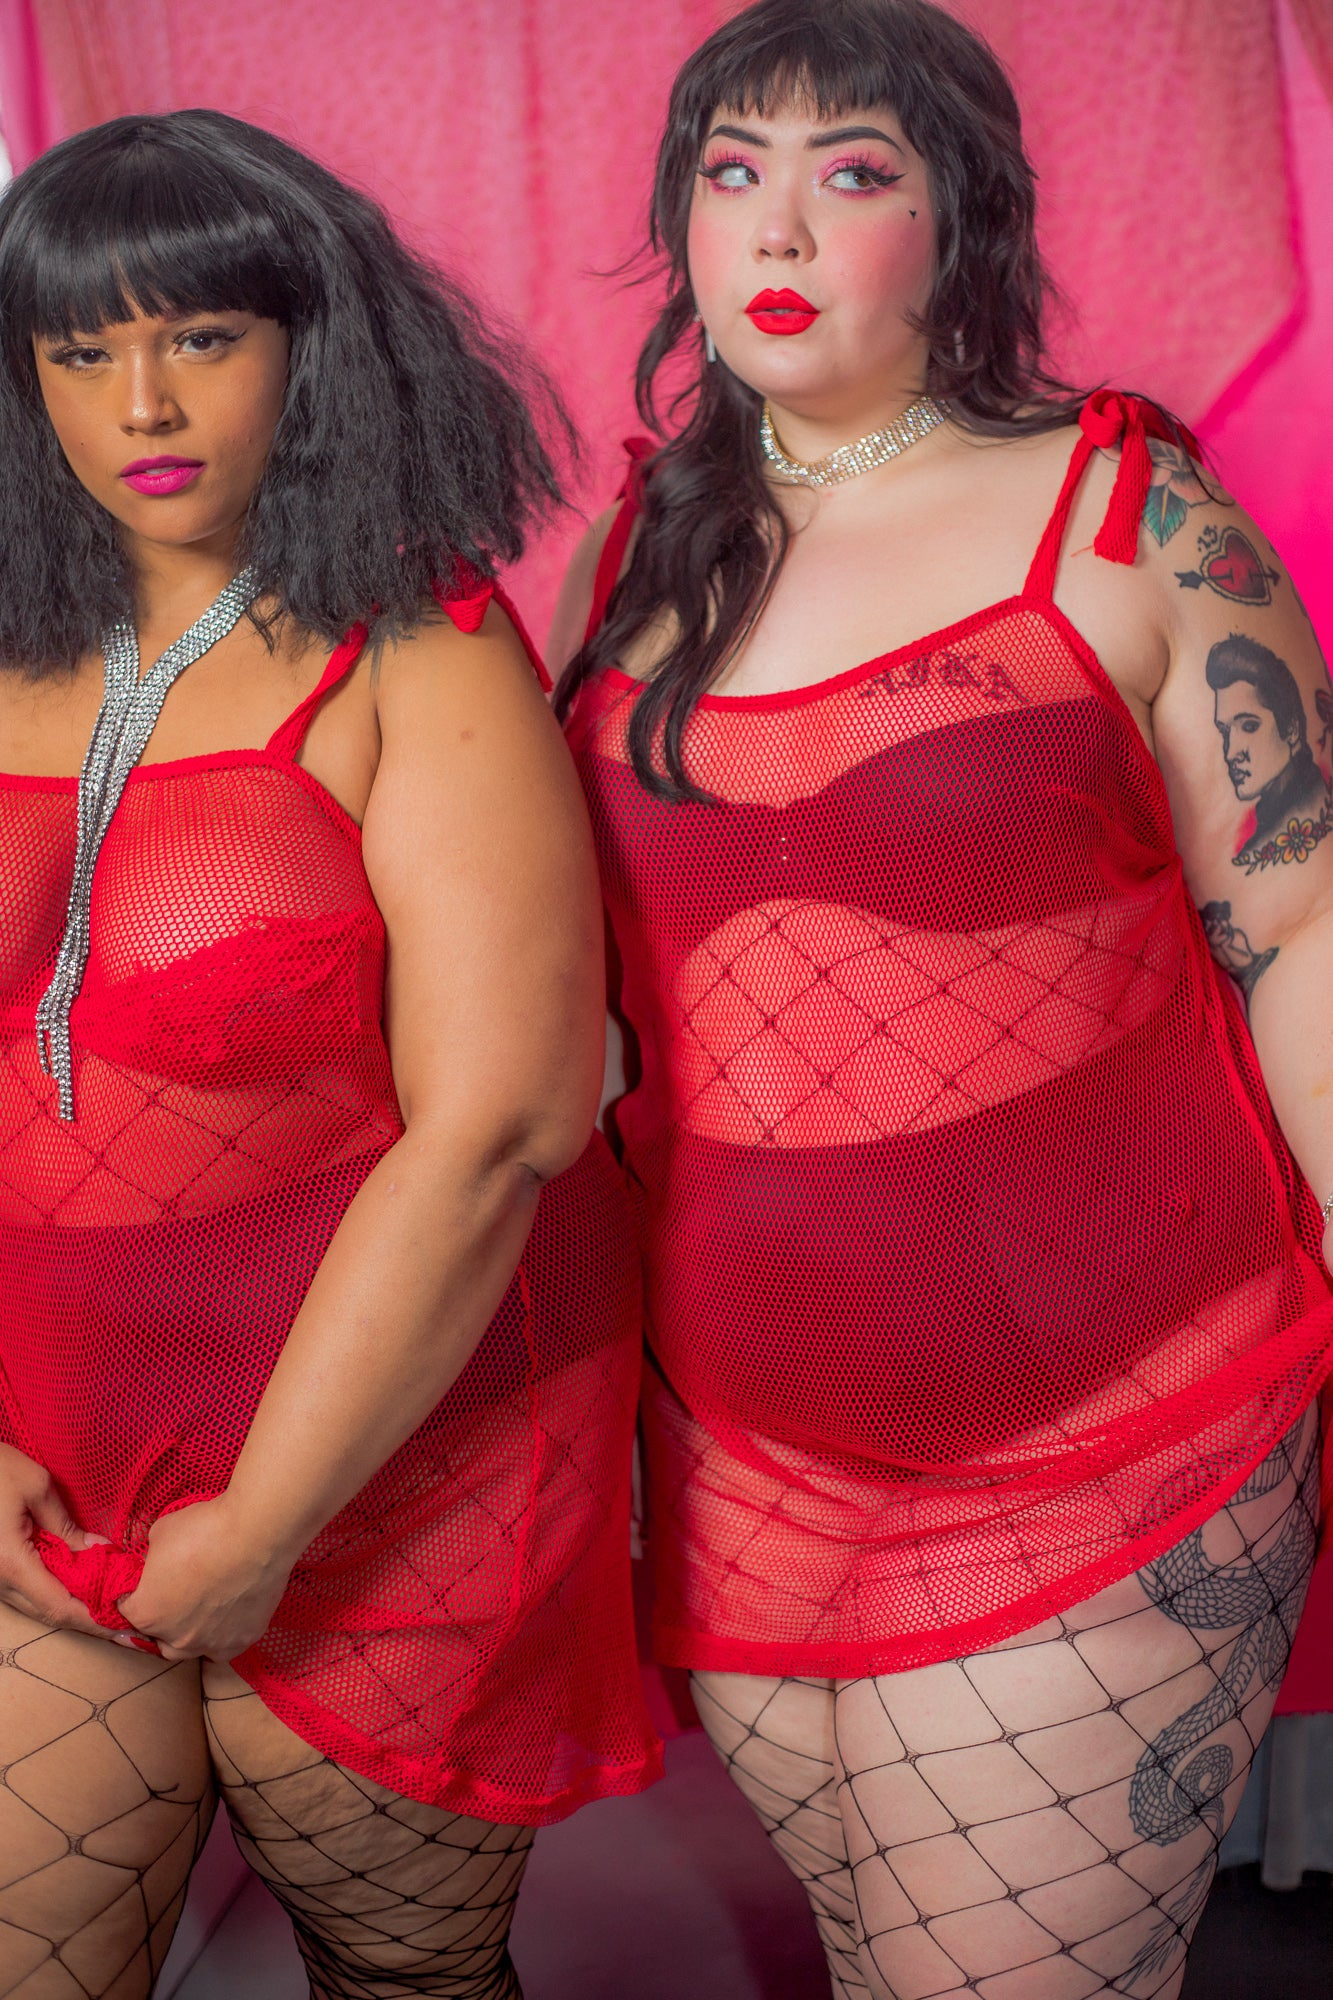 Plus size model wearing proud mary fashion los angeles plus size lingerie fishnet dress. Shot by Jessica Hinkle.